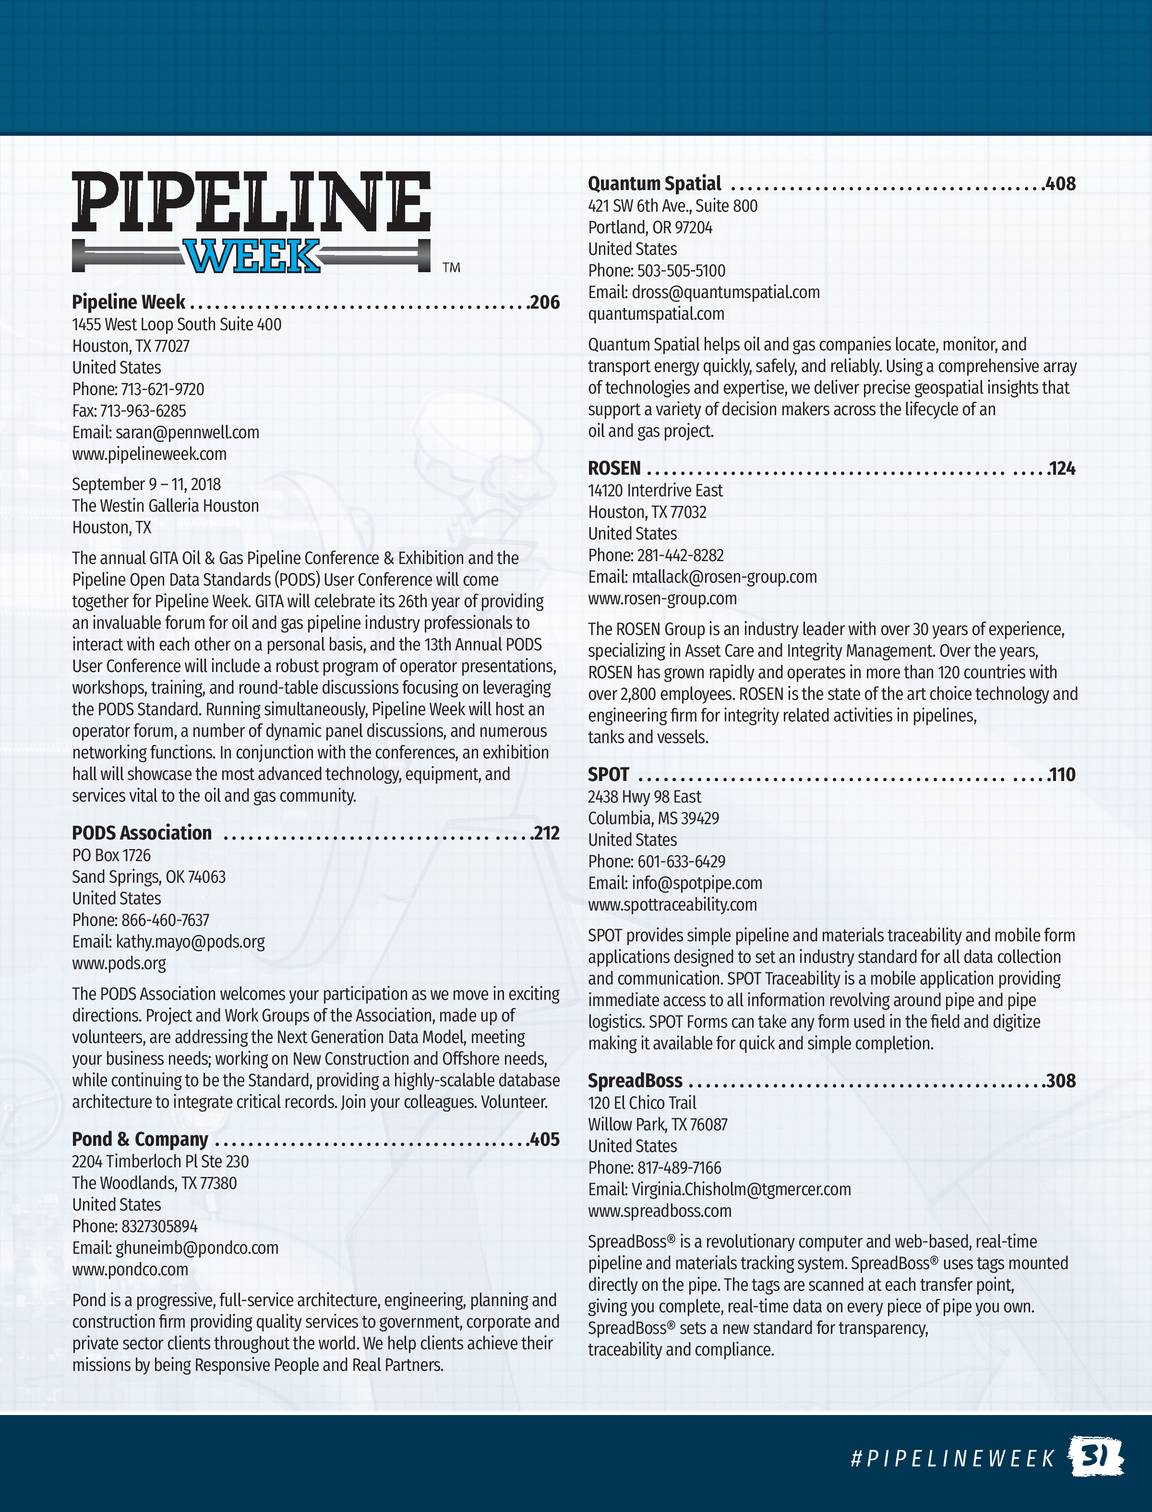 Pennwell Supplements - Pipeline Week 2017 Show Guide - page 30